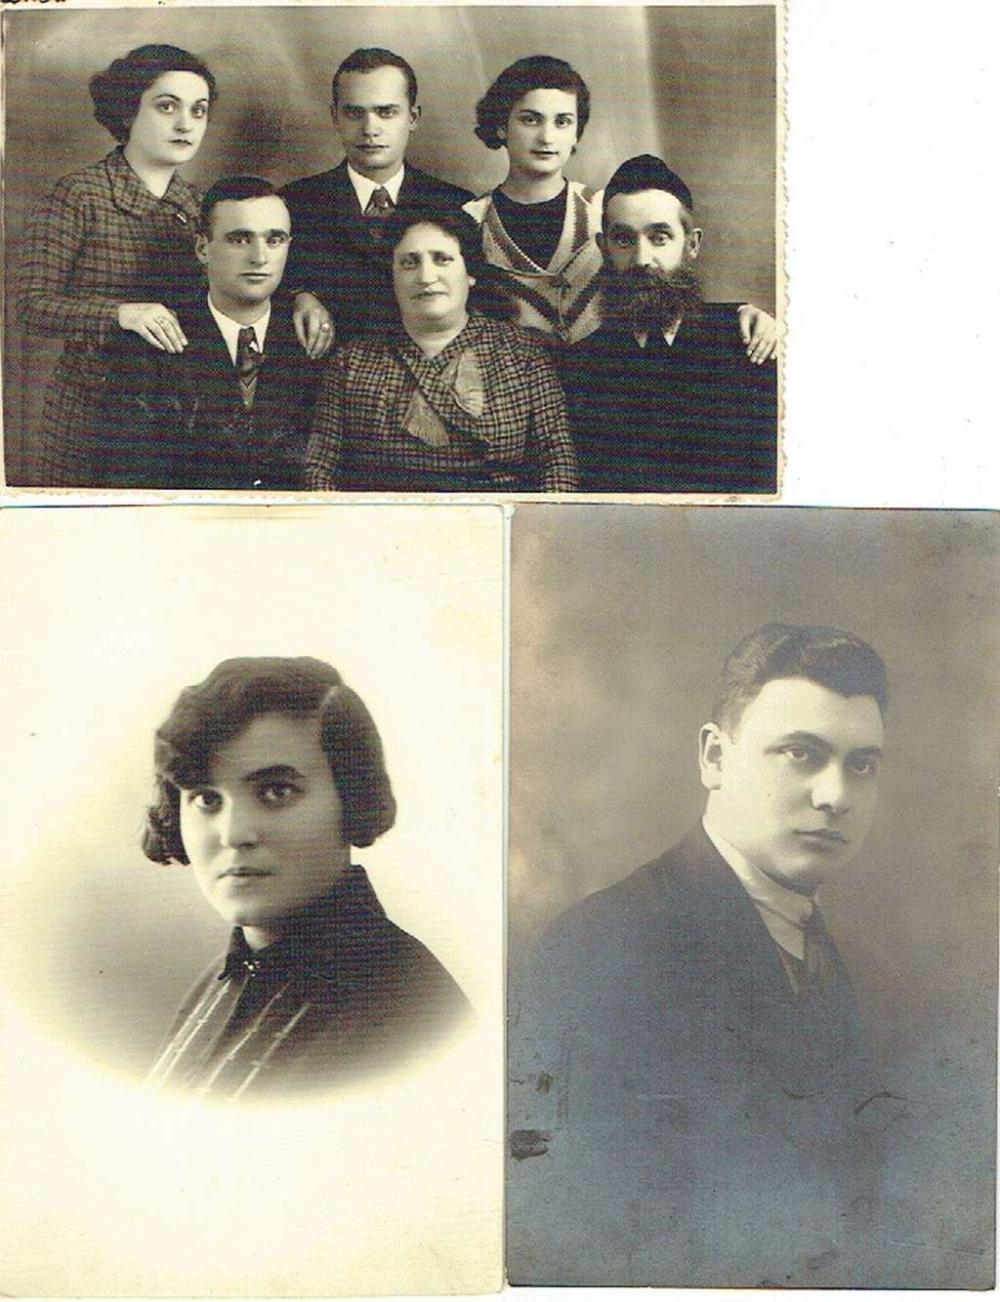 3 Photos of a Jewish family from Lublin Poland sent to Palestine, 1929, 1935, 1936